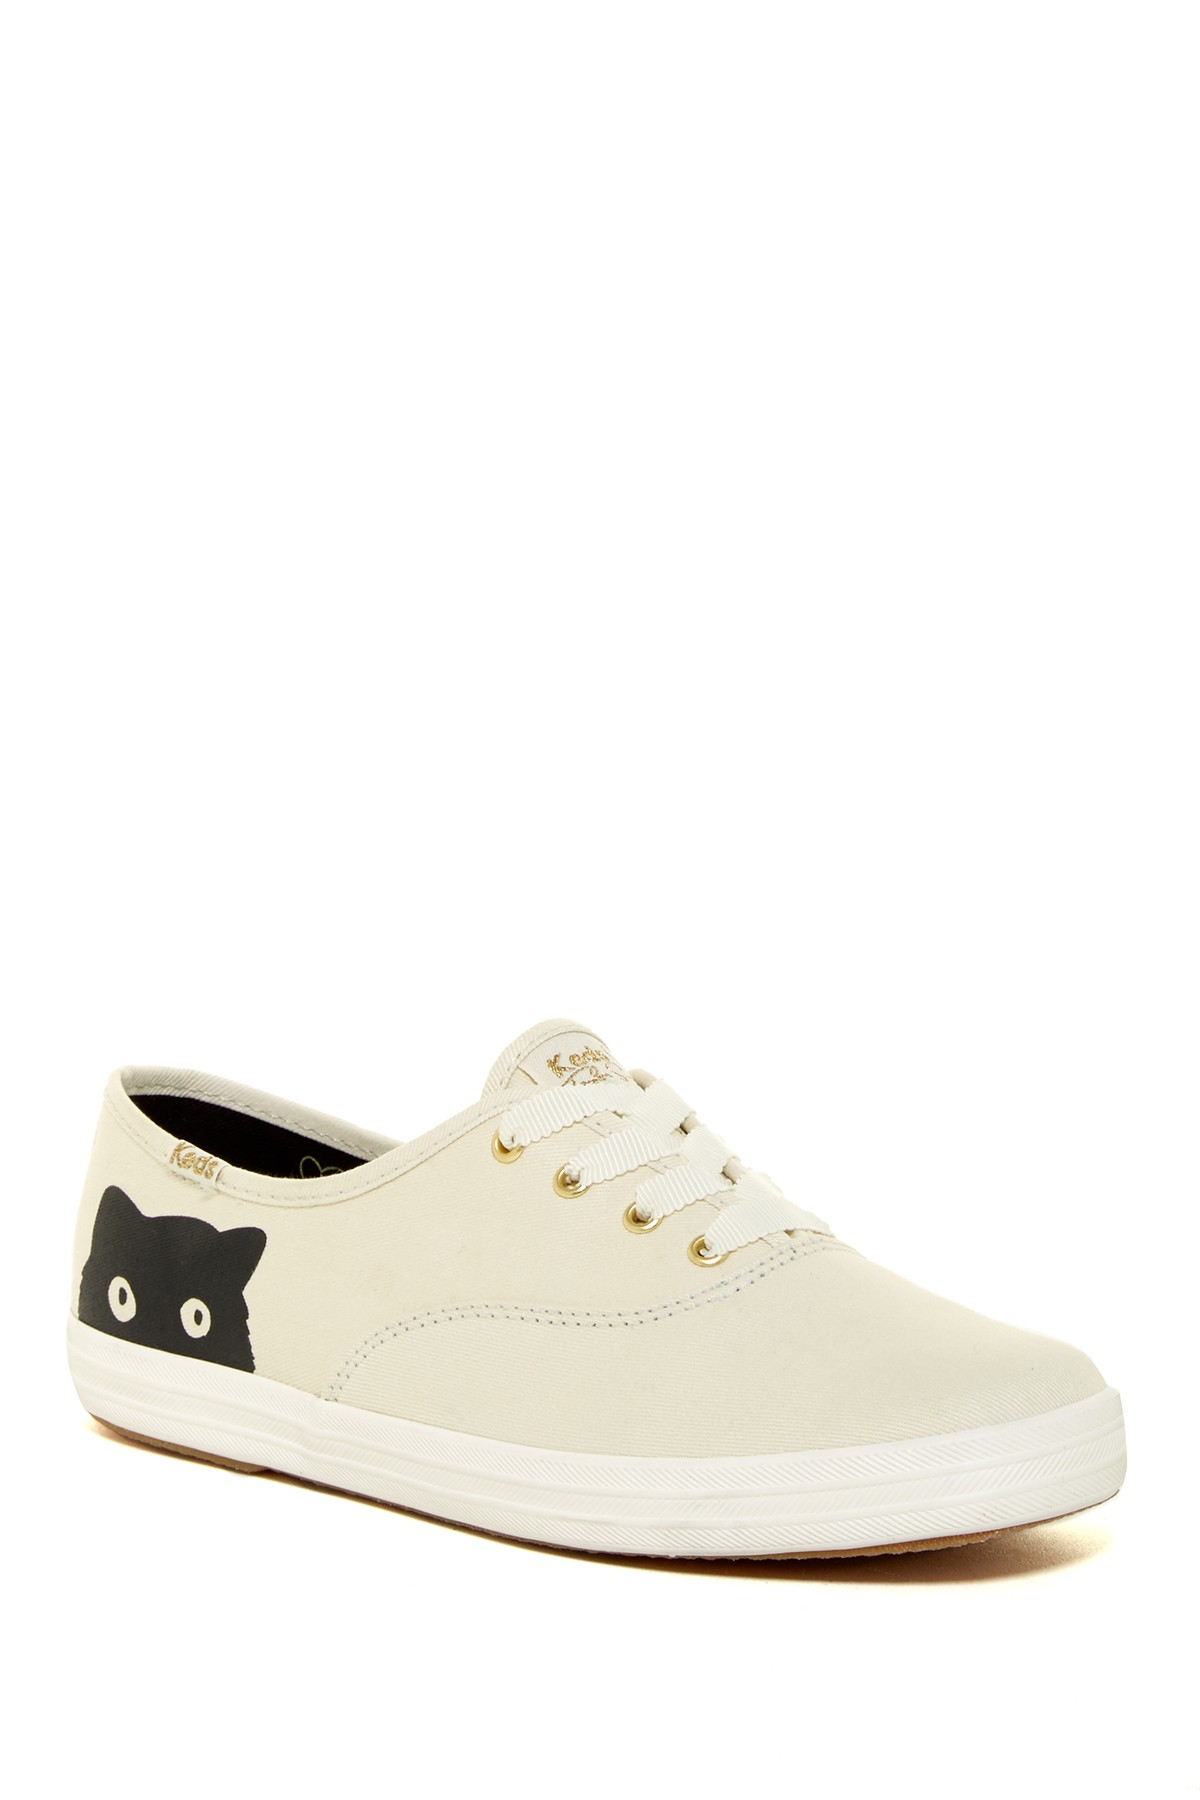 c0f348fd384 ExtraTV.com  Lyst - Keds Taylor Swift Champion Sneaky Cat Sneaker in  Natural ...